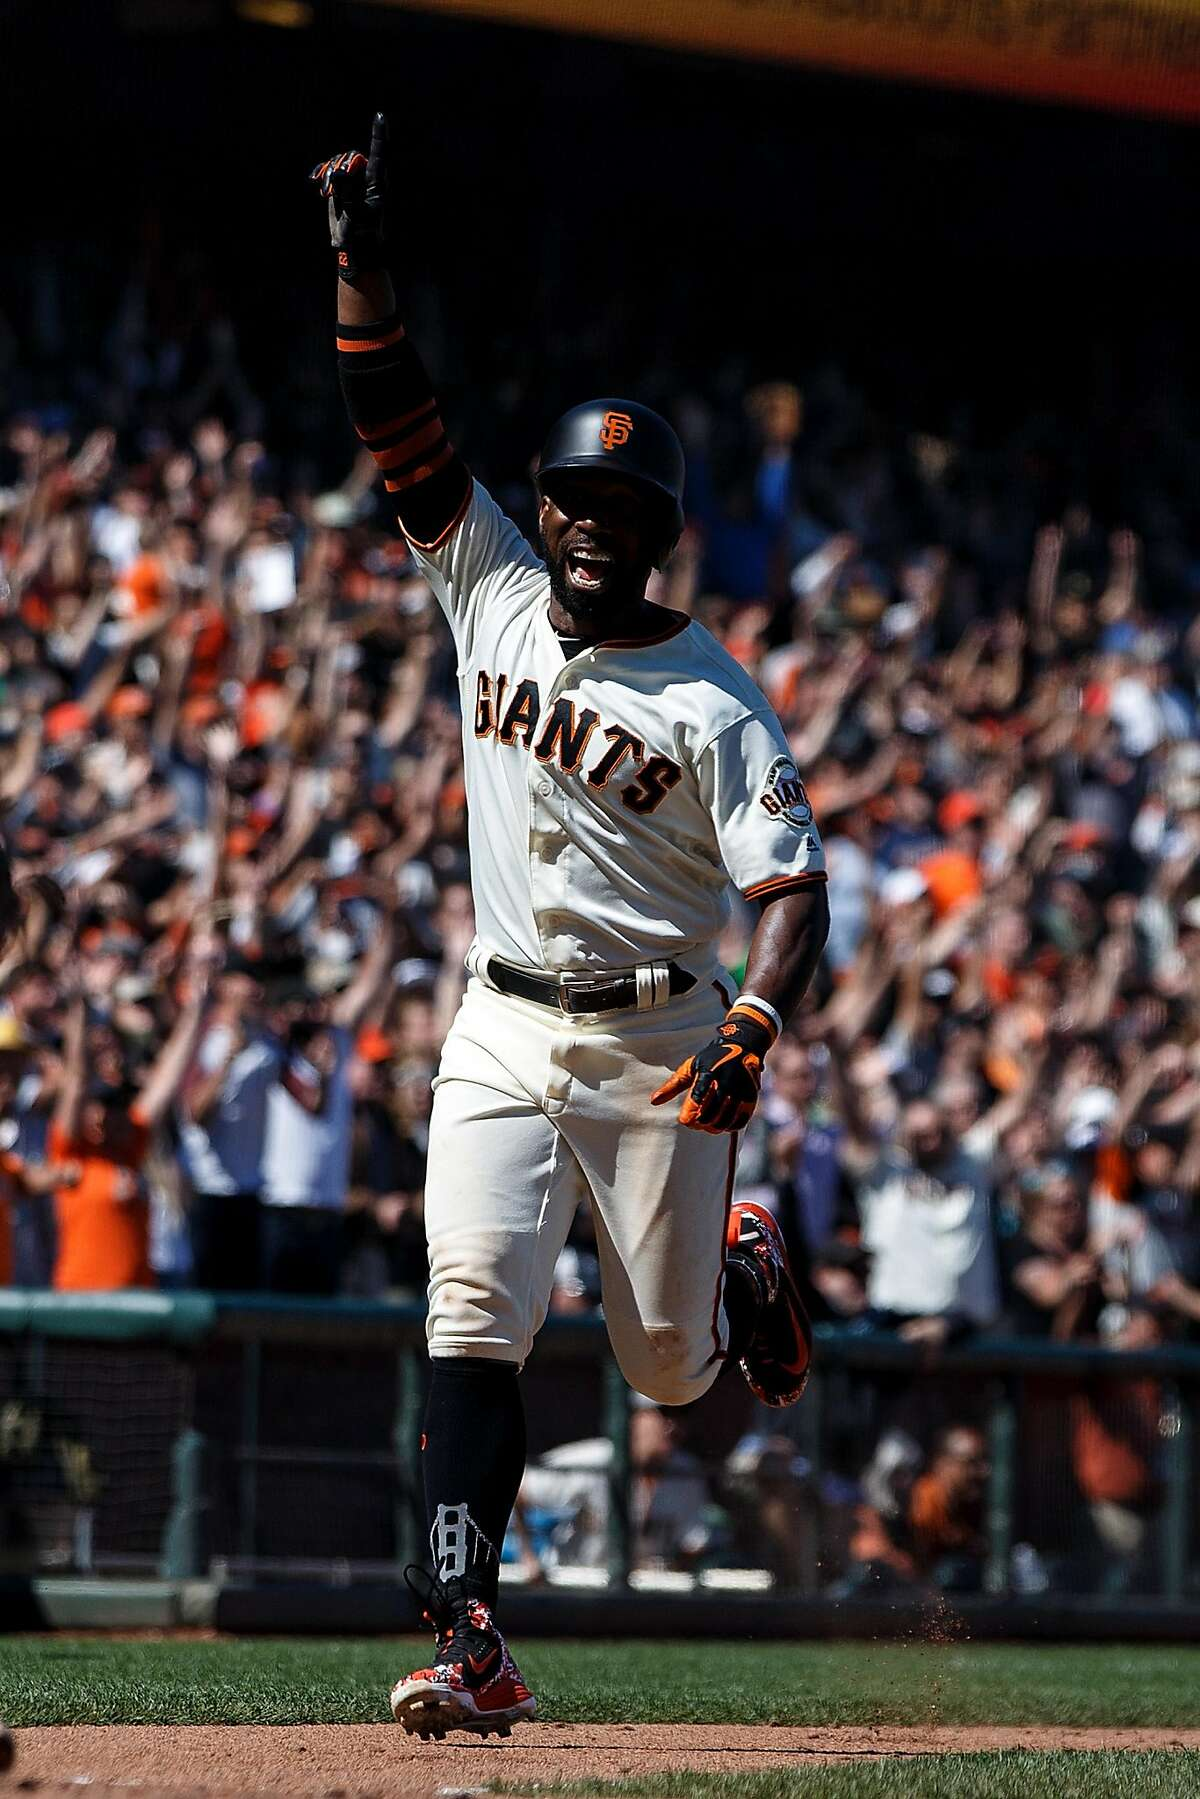 SAN FRANCISCO, CA - JUNE 24: Andrew McCutchen #22 of the San Francisco Giants celebrates while scoring on a two run walk off double by Hunter Pence (not pictured) against the San Diego Padres during the eleventh inning at AT&T Park on June 24, 2018 in San Francisco, California. The San Francisco Giants defeated the San Diego Padres 3-2 in 11 innings. (Photo by Jason O. Watson/Getty Images)